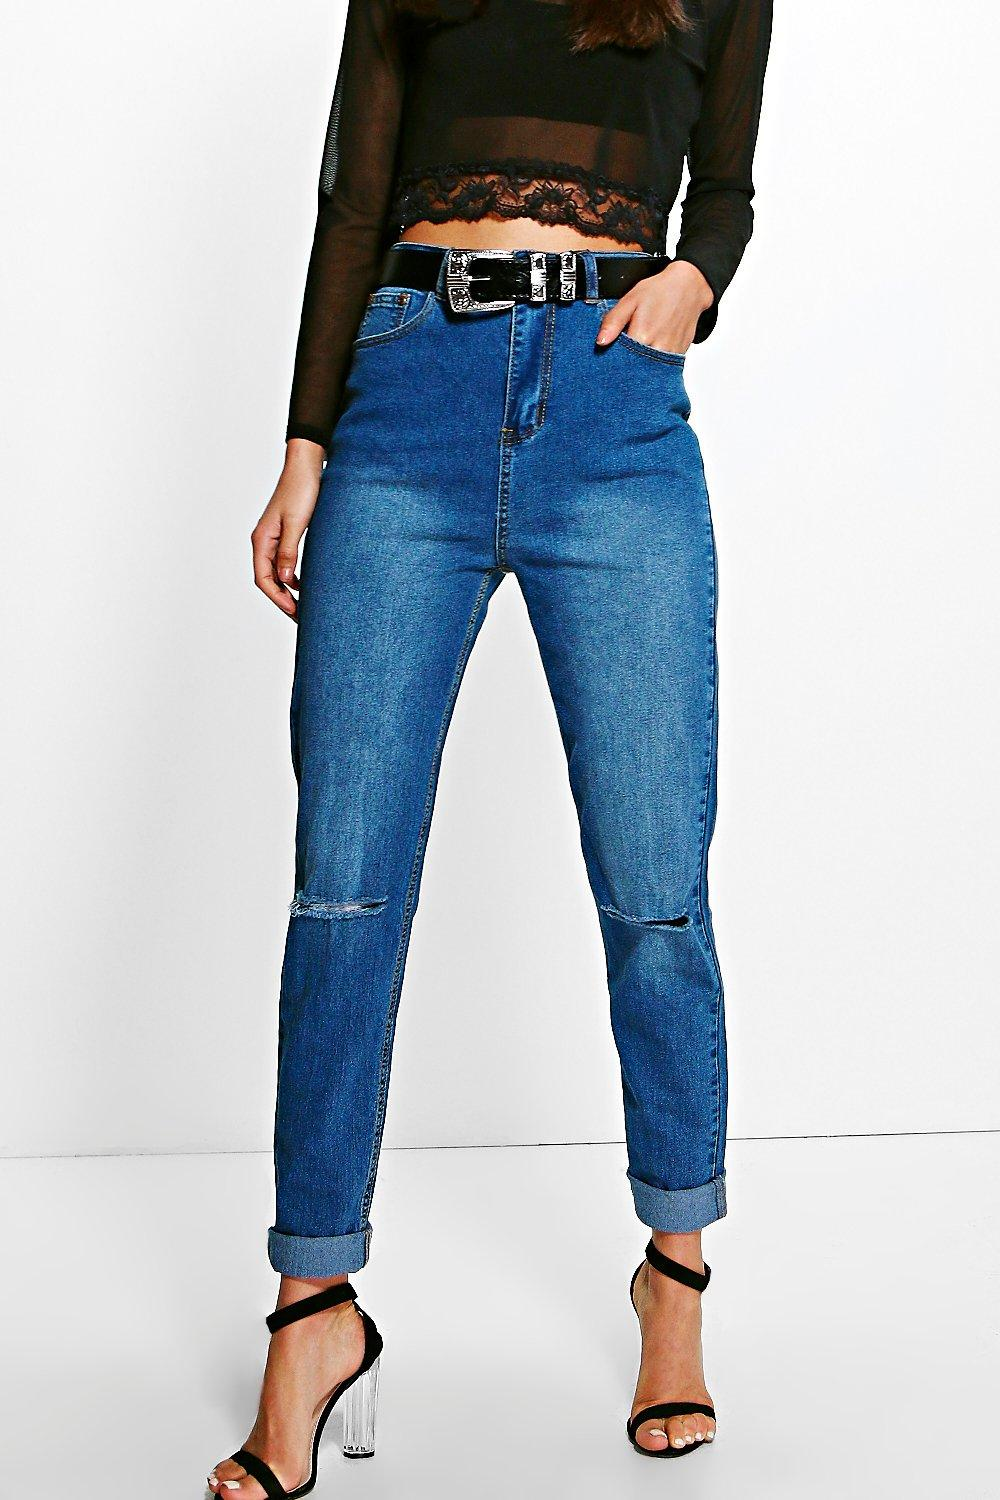 d7175518a7 ... High Waist Slim Fit Jeans. Hover to zoom